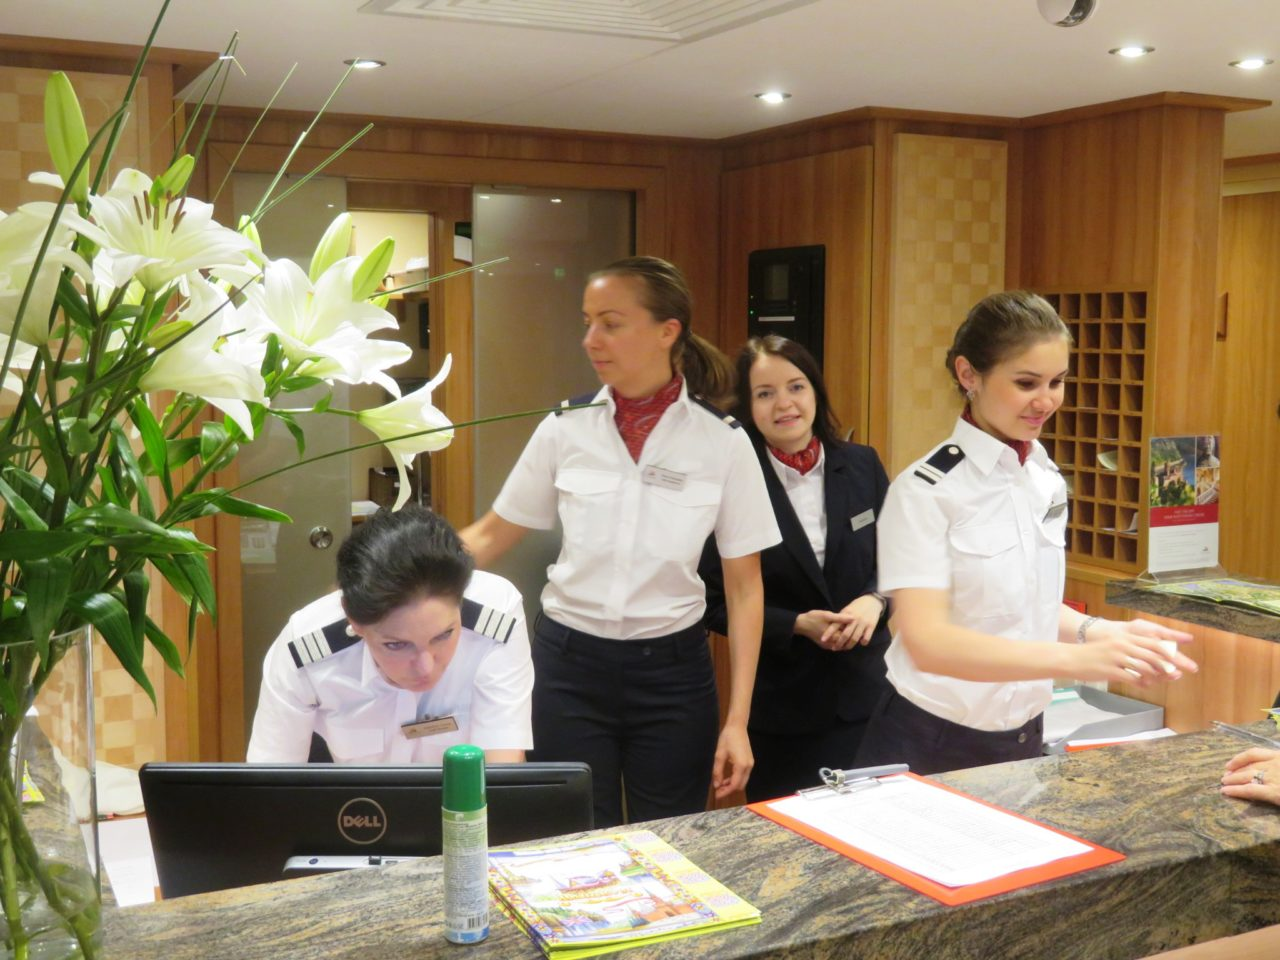 Superb and personalized service was a highlight of our cruise aboard the Viking Akun river cruise ship in Russia